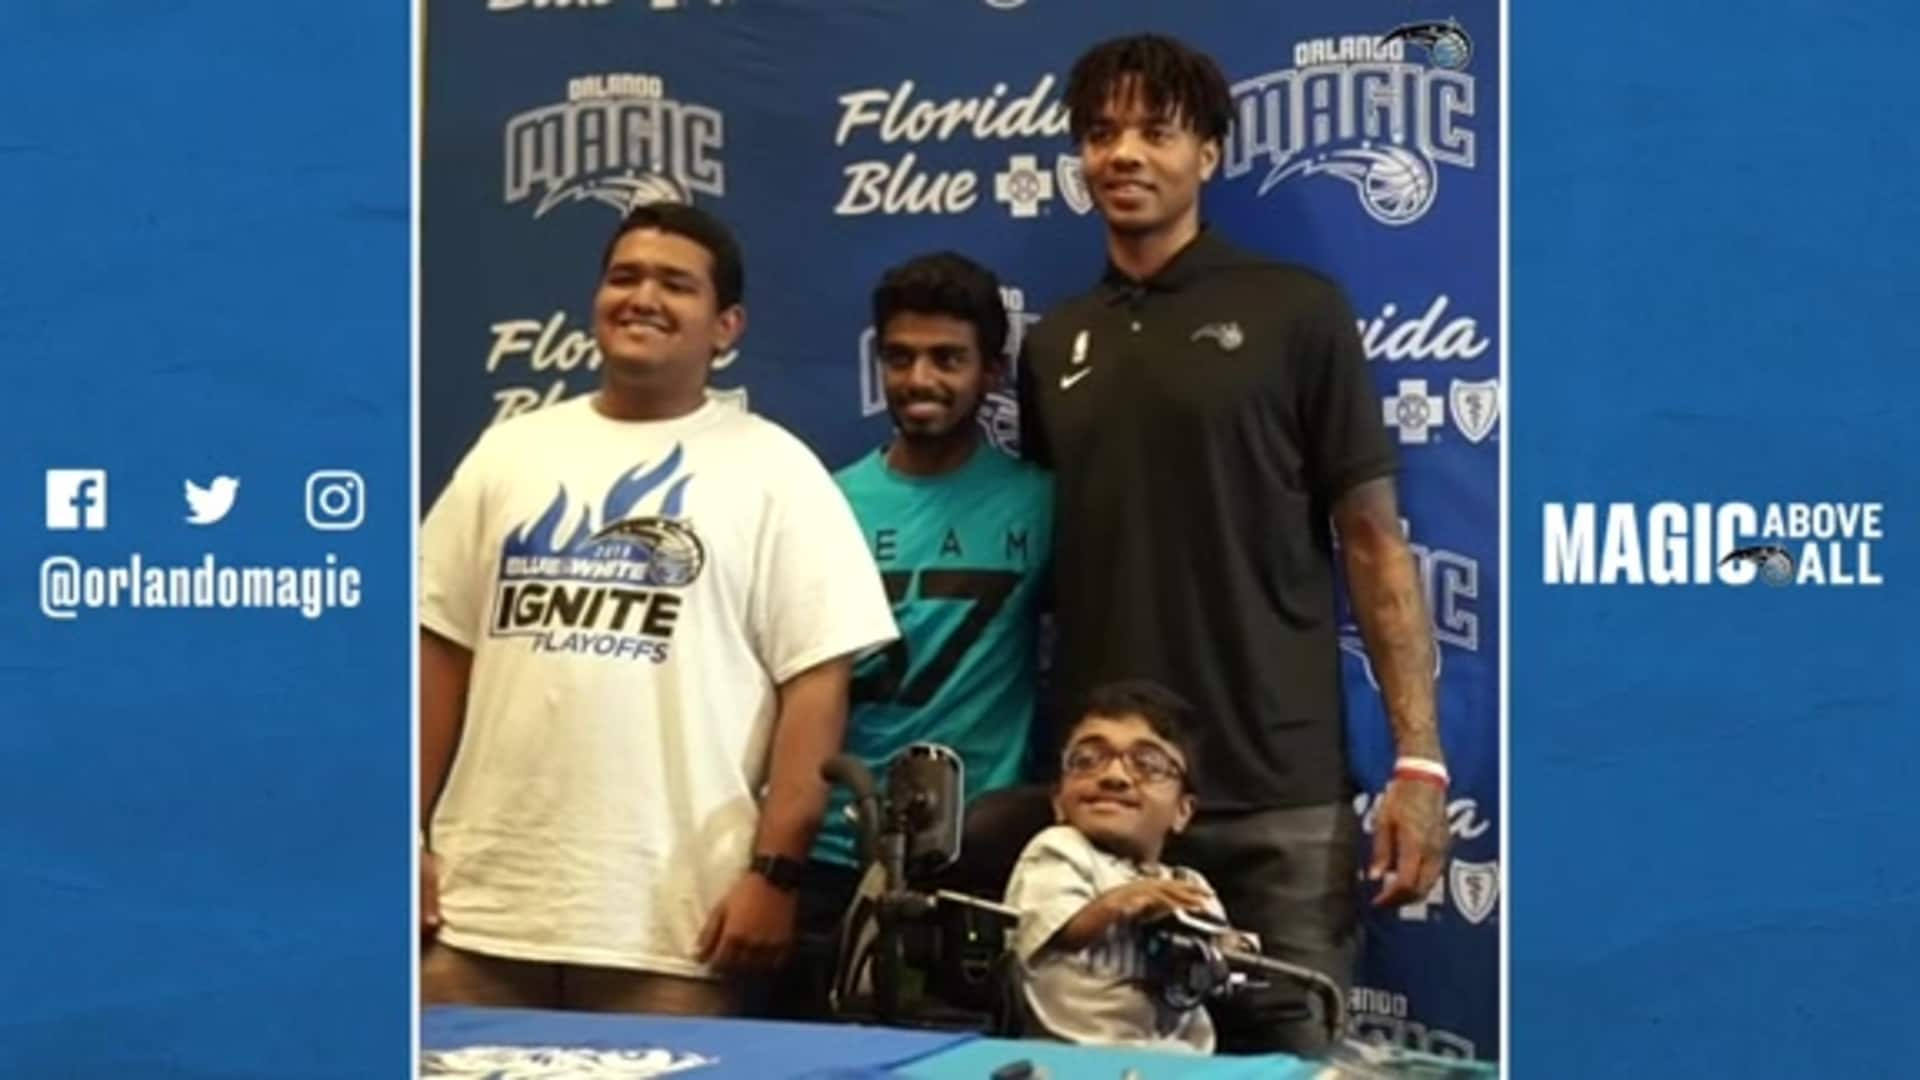 Markelle, Magic and Florida Blue Team Up For Basket For Books